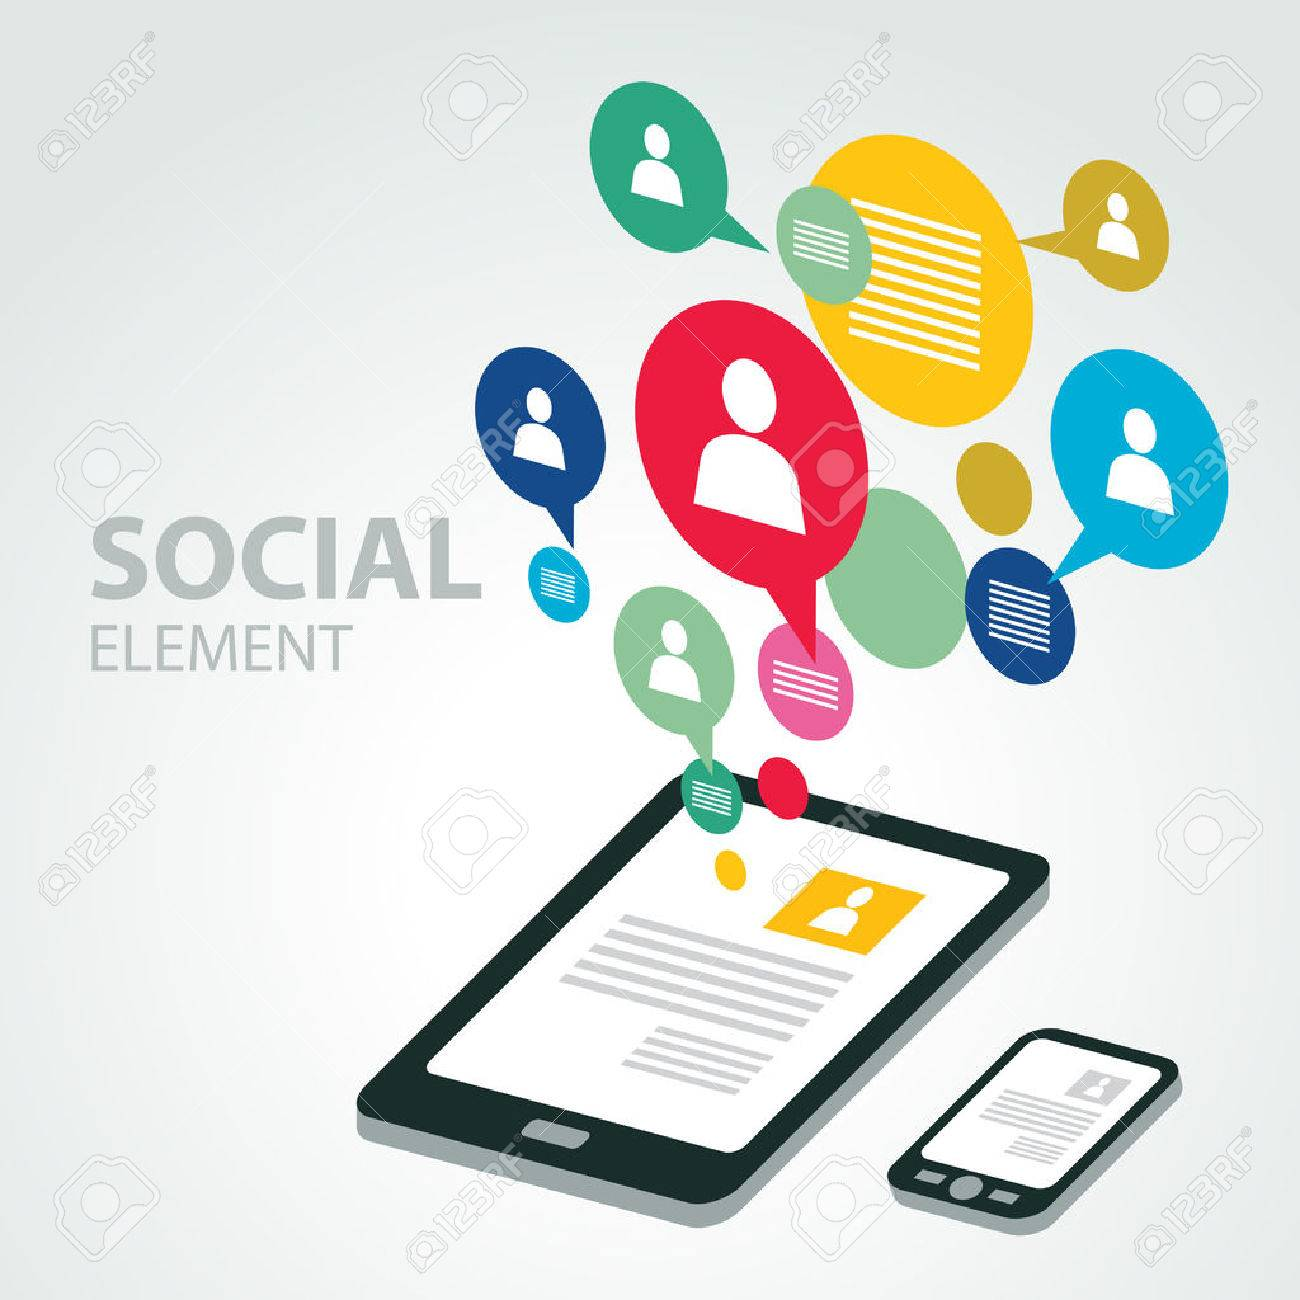 social icon group element - 55380956